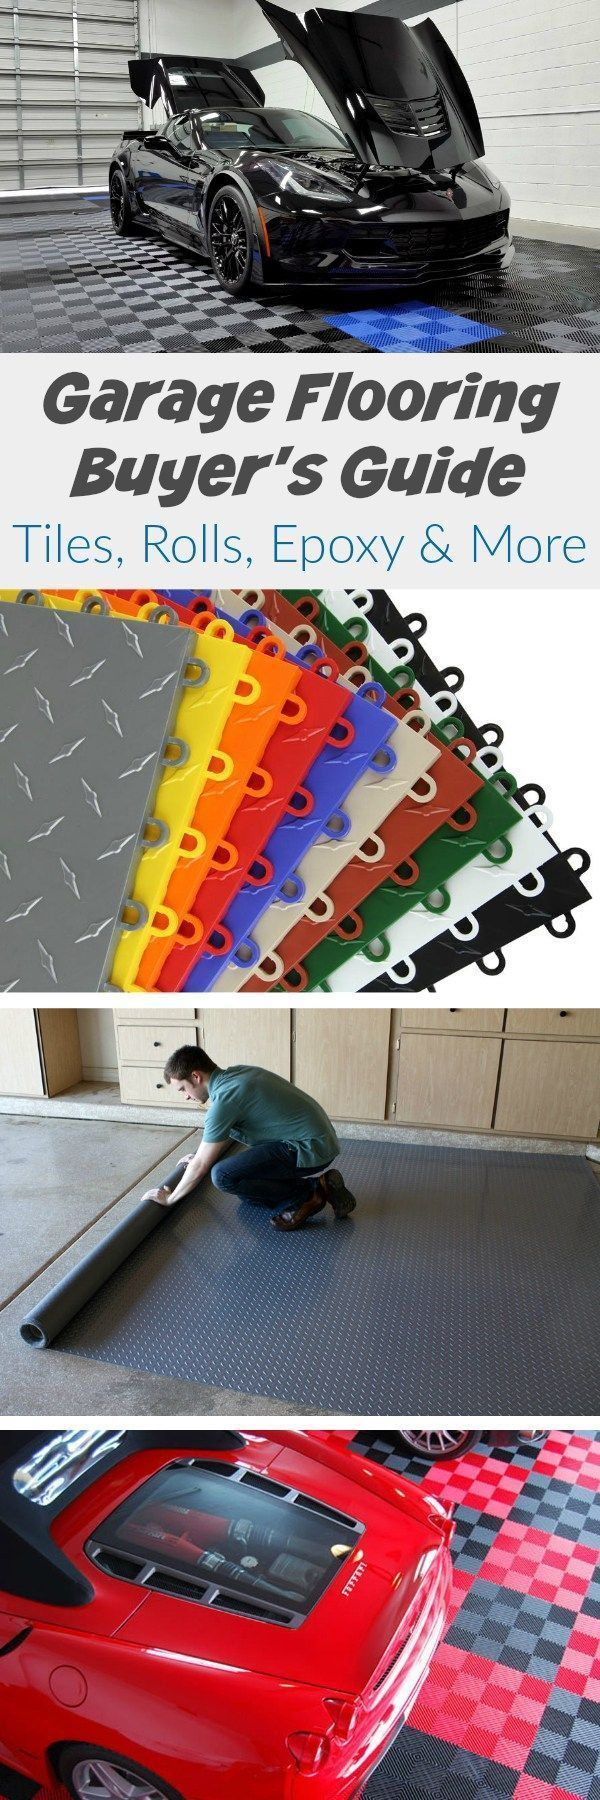 Garage Flooring Buying Guide Tiles Rolls Epoxy More Garazs